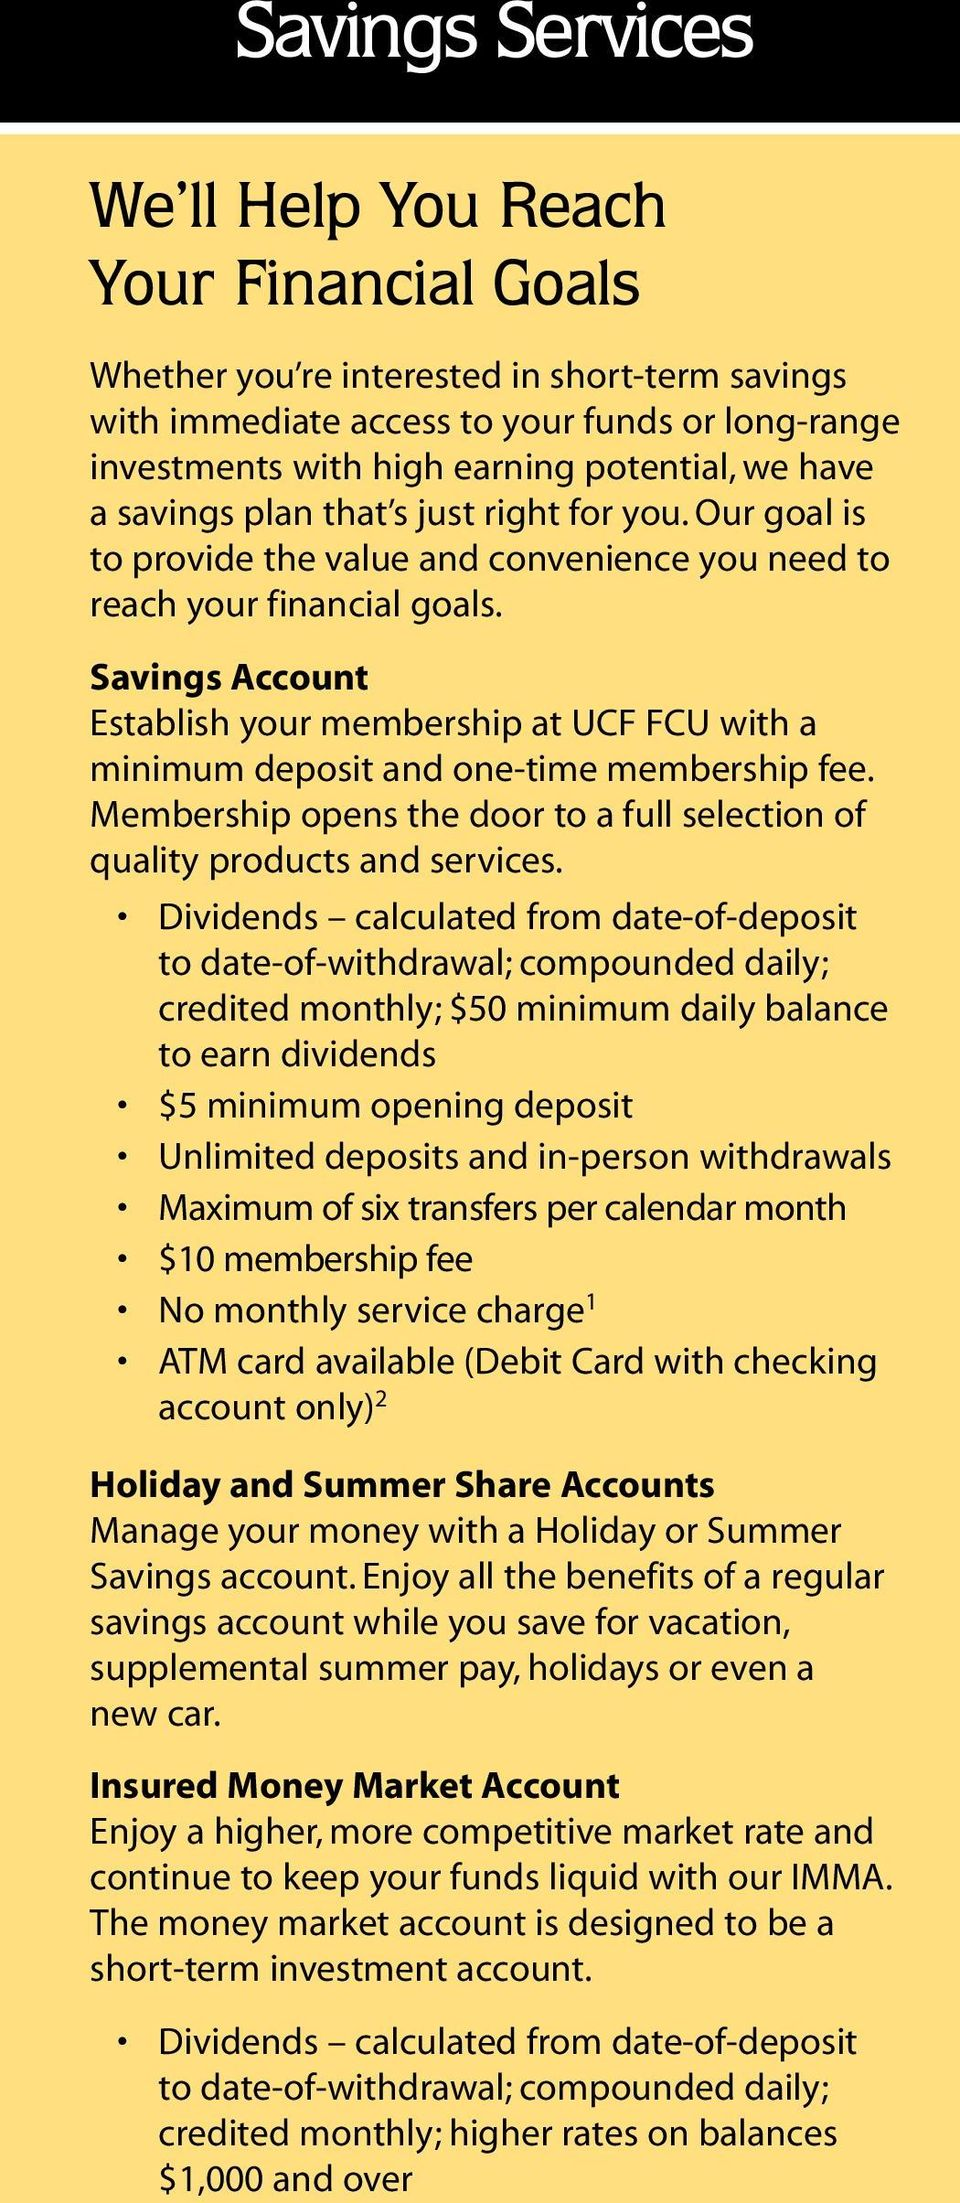 Savings Account Establish your membership at UCF FCU with a minimum deposit and one-time membership fee. Membership opens the door to a full selection of quality products and services.